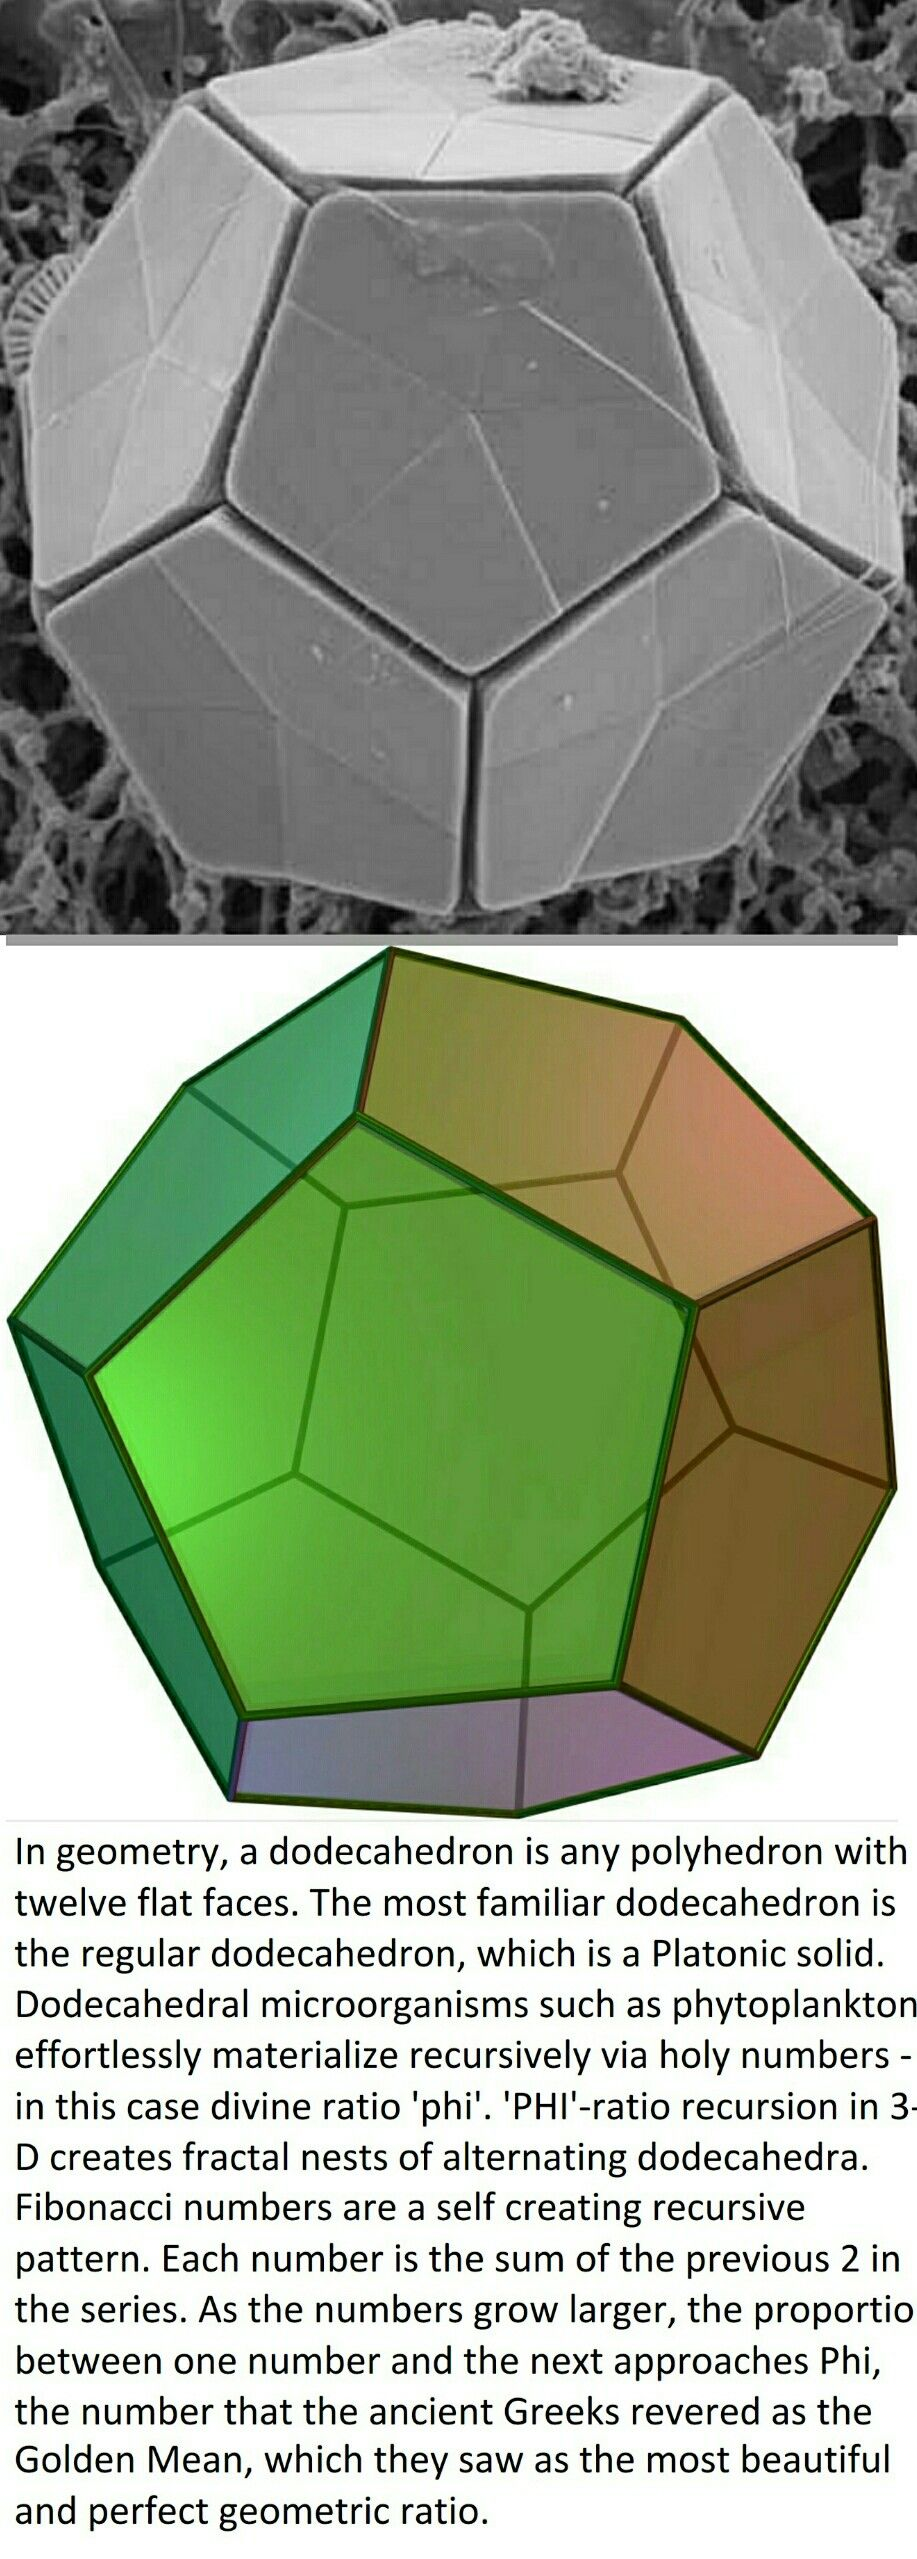 Dodecahedral Microorganisms Such As Phytoplankton Effortlessly Materialize Recursively Via The Ratio Phi Coccolith Microorganisms Plankton Calcium Carbonate [ 2559 x 917 Pixel ]